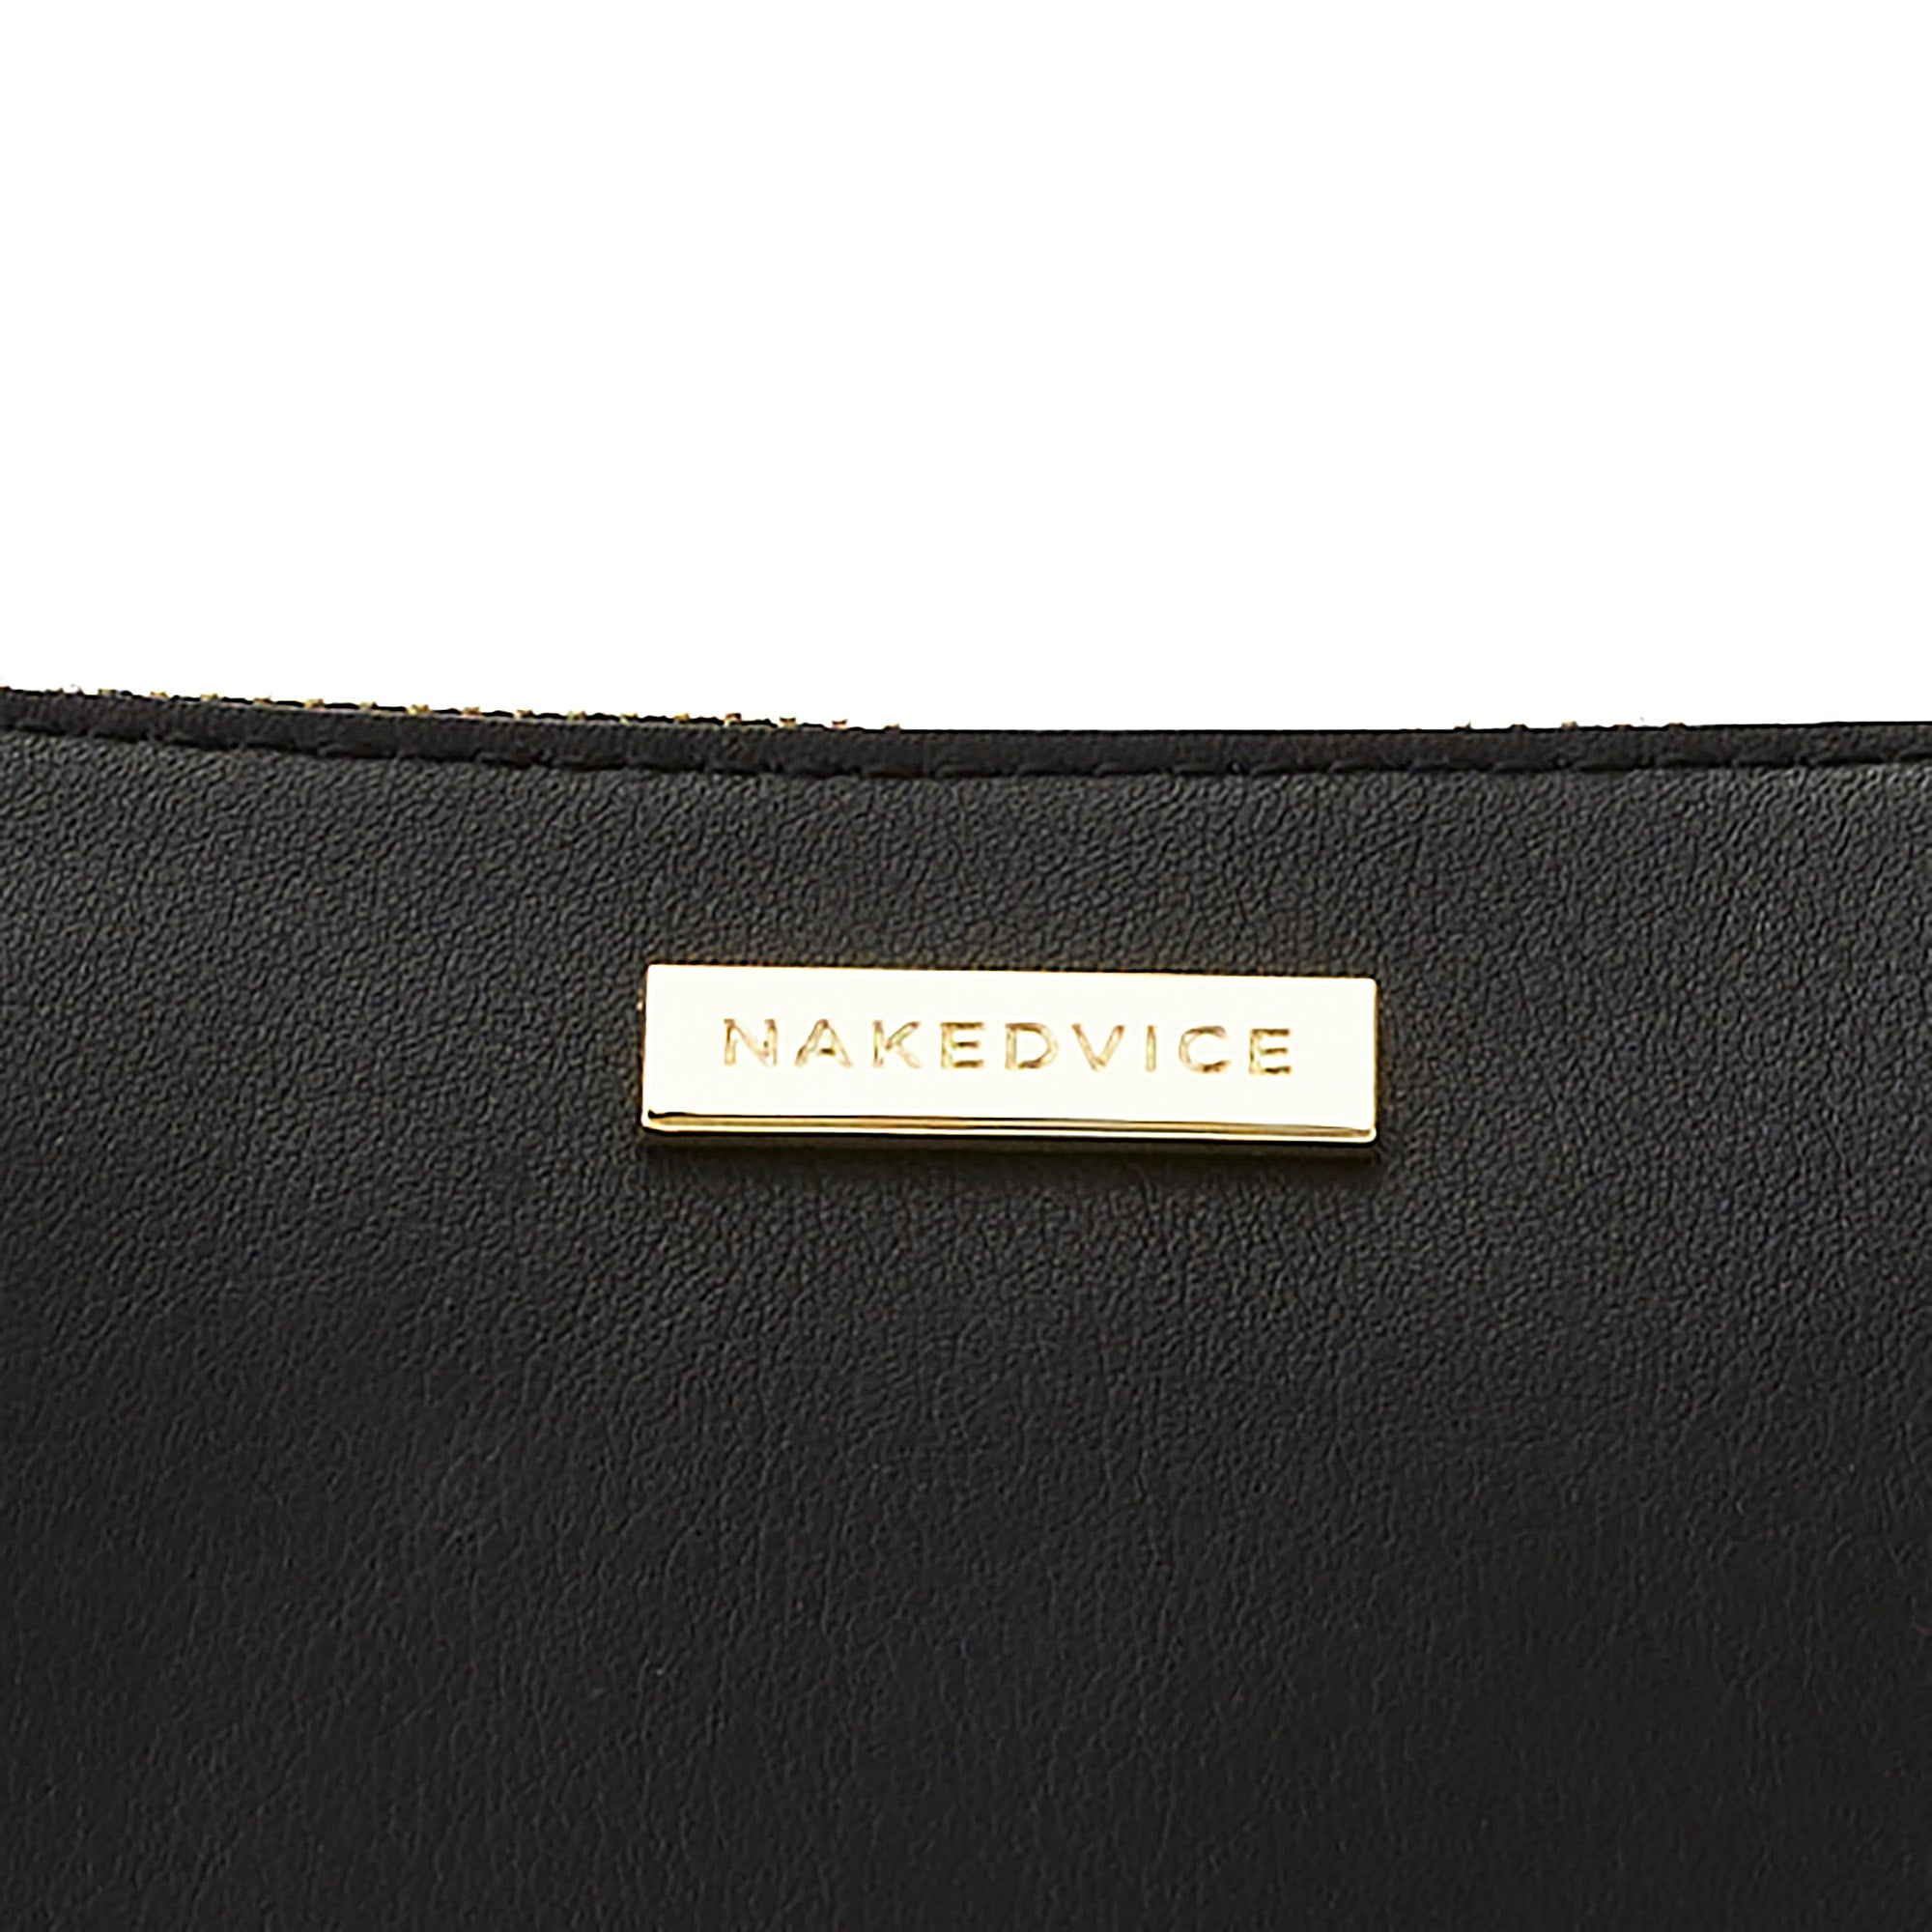 THE MARTIN LEATHER HANDBAG